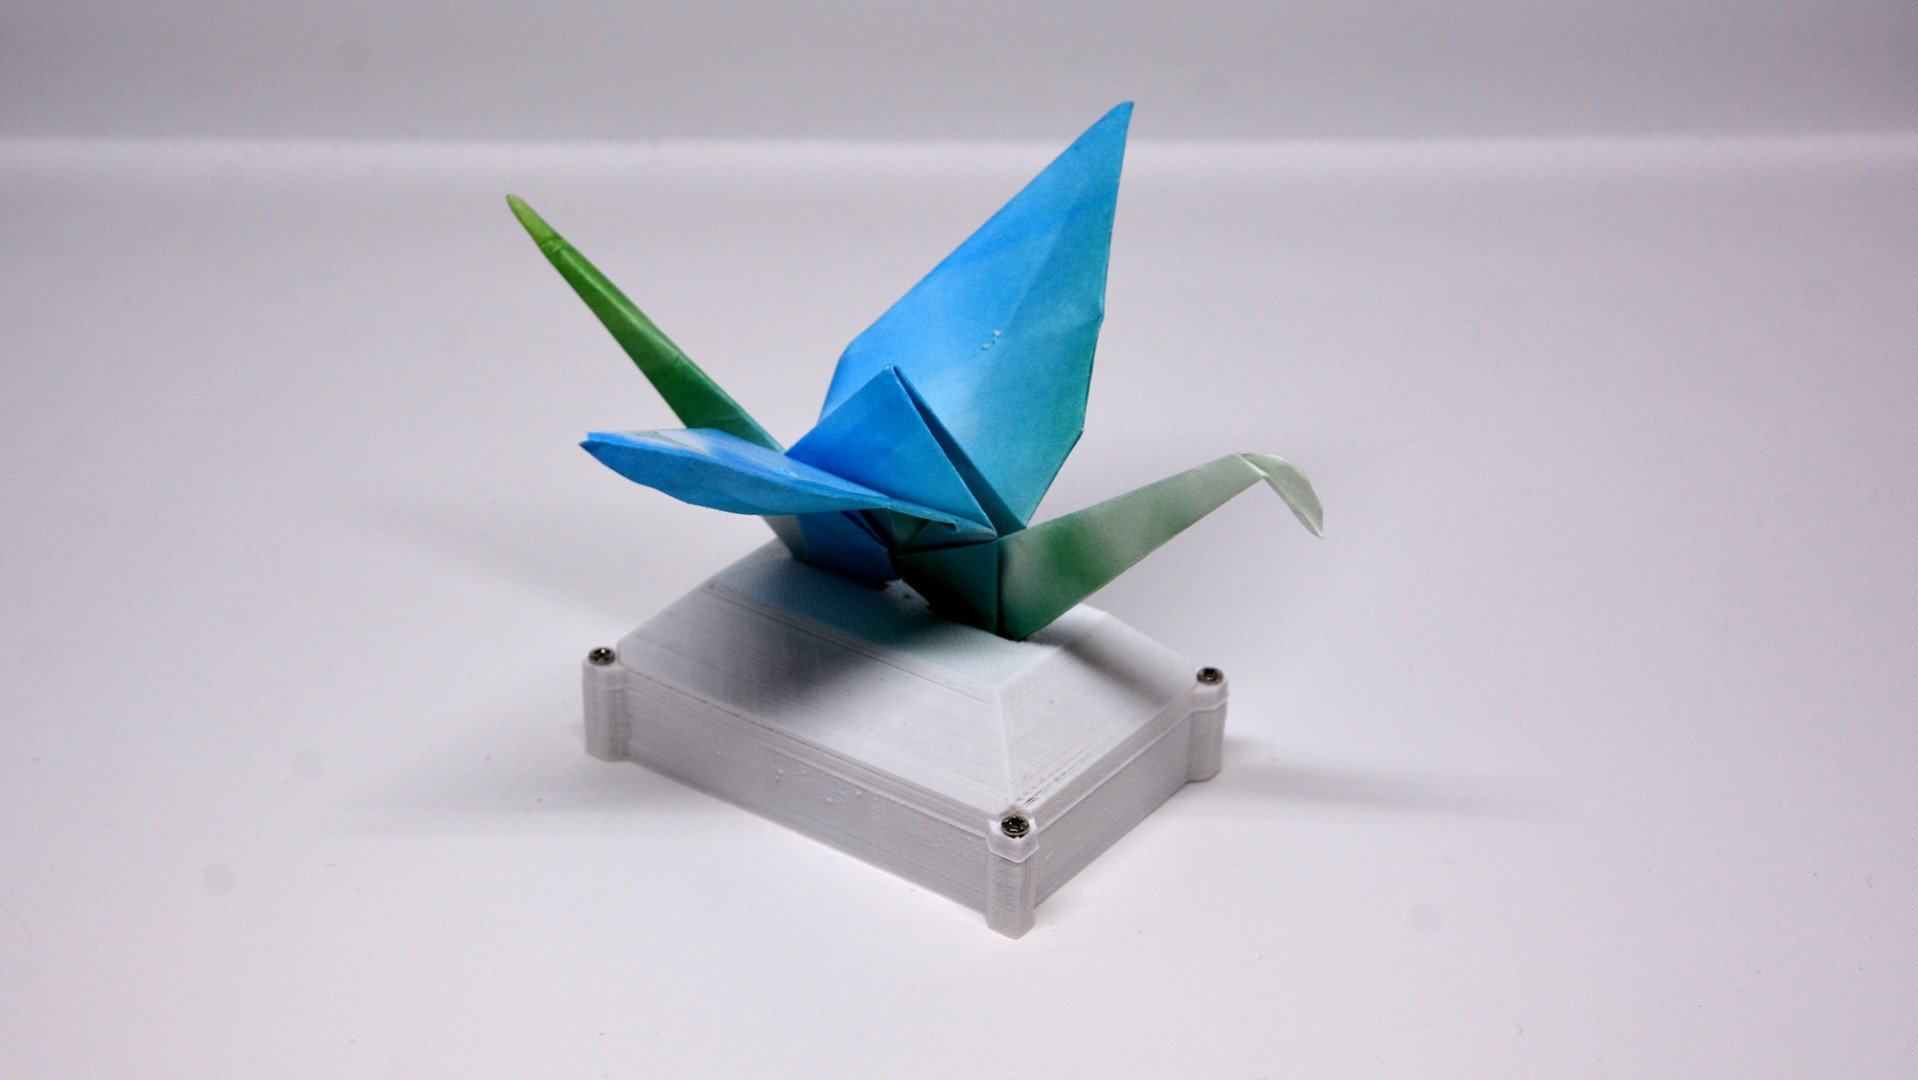 [Project] Automated Origami Swan | All3DP